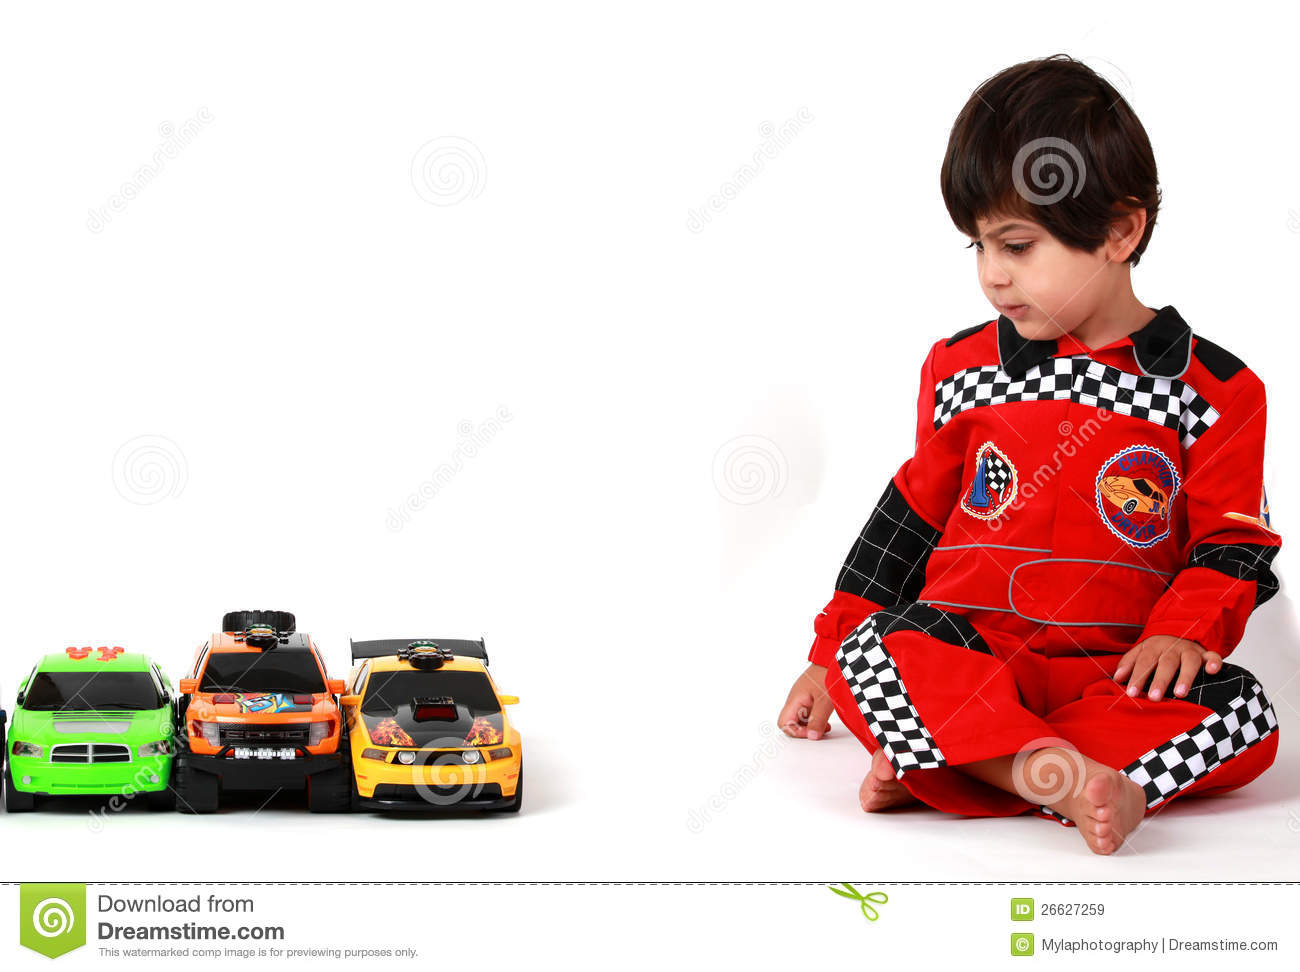 Race car game  sc 1 st  Dreamstime.com & Race car game stock image. Image of cars stare race - 26627259